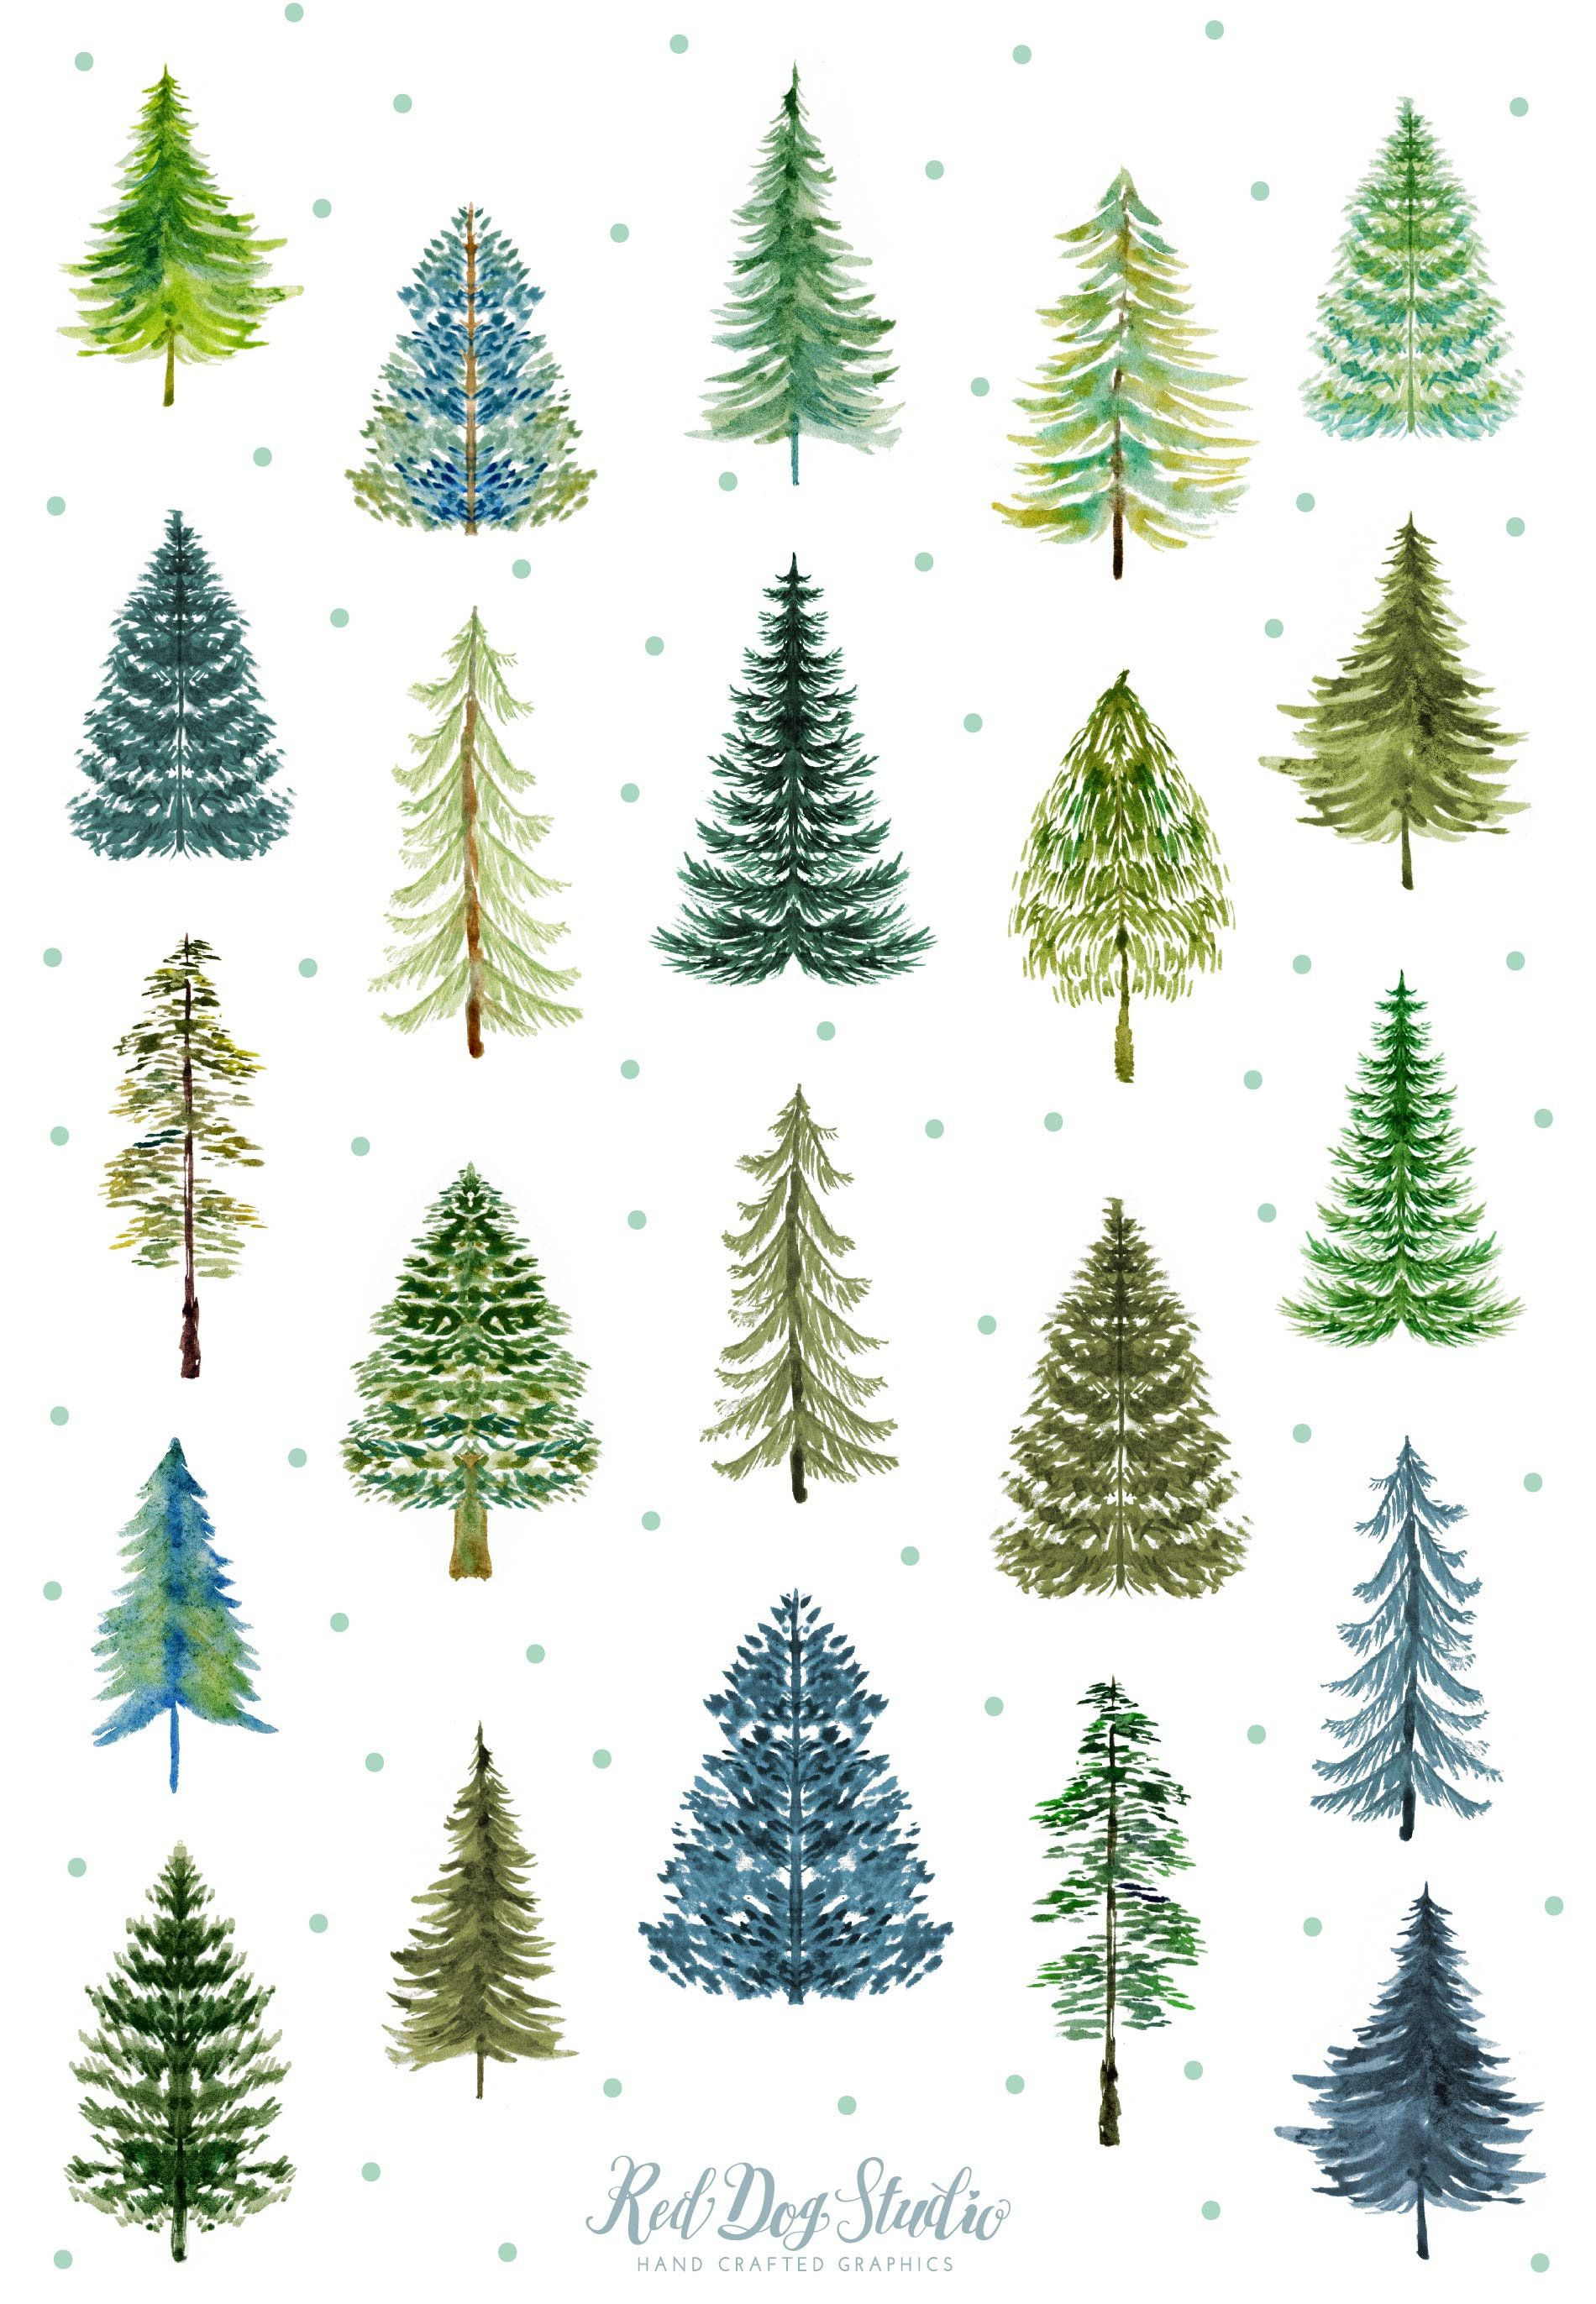 Pine Tree Clip Art Wedding Clipart Luxury Christmas Trees 18 Watercolor Holiday Clipart Conifers Pine Tree Drawing Tree Drawing Pine Tree Tattoo